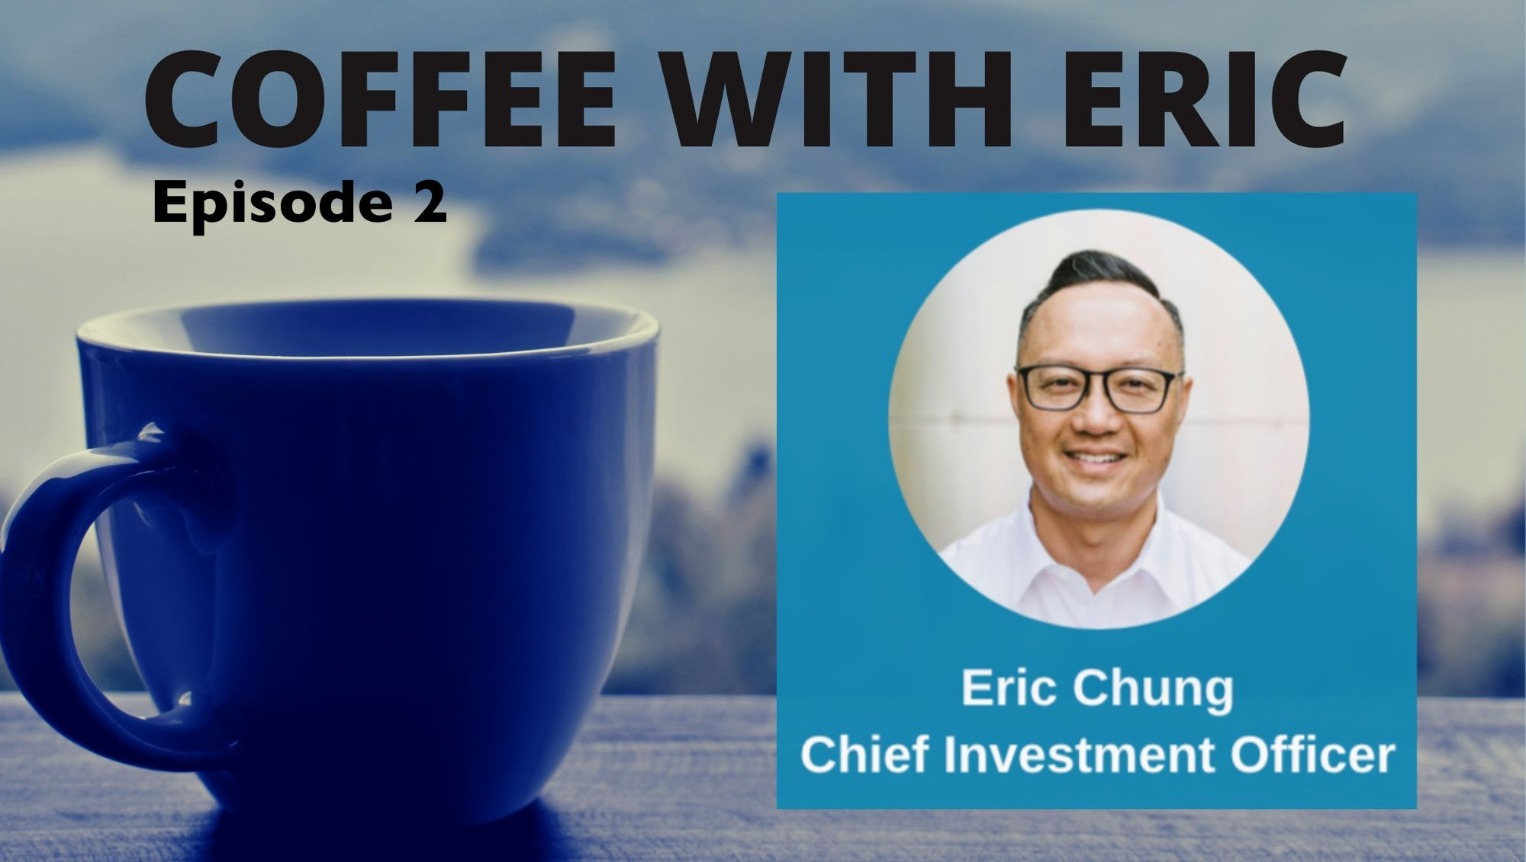 Coffee With Eric Episode 2